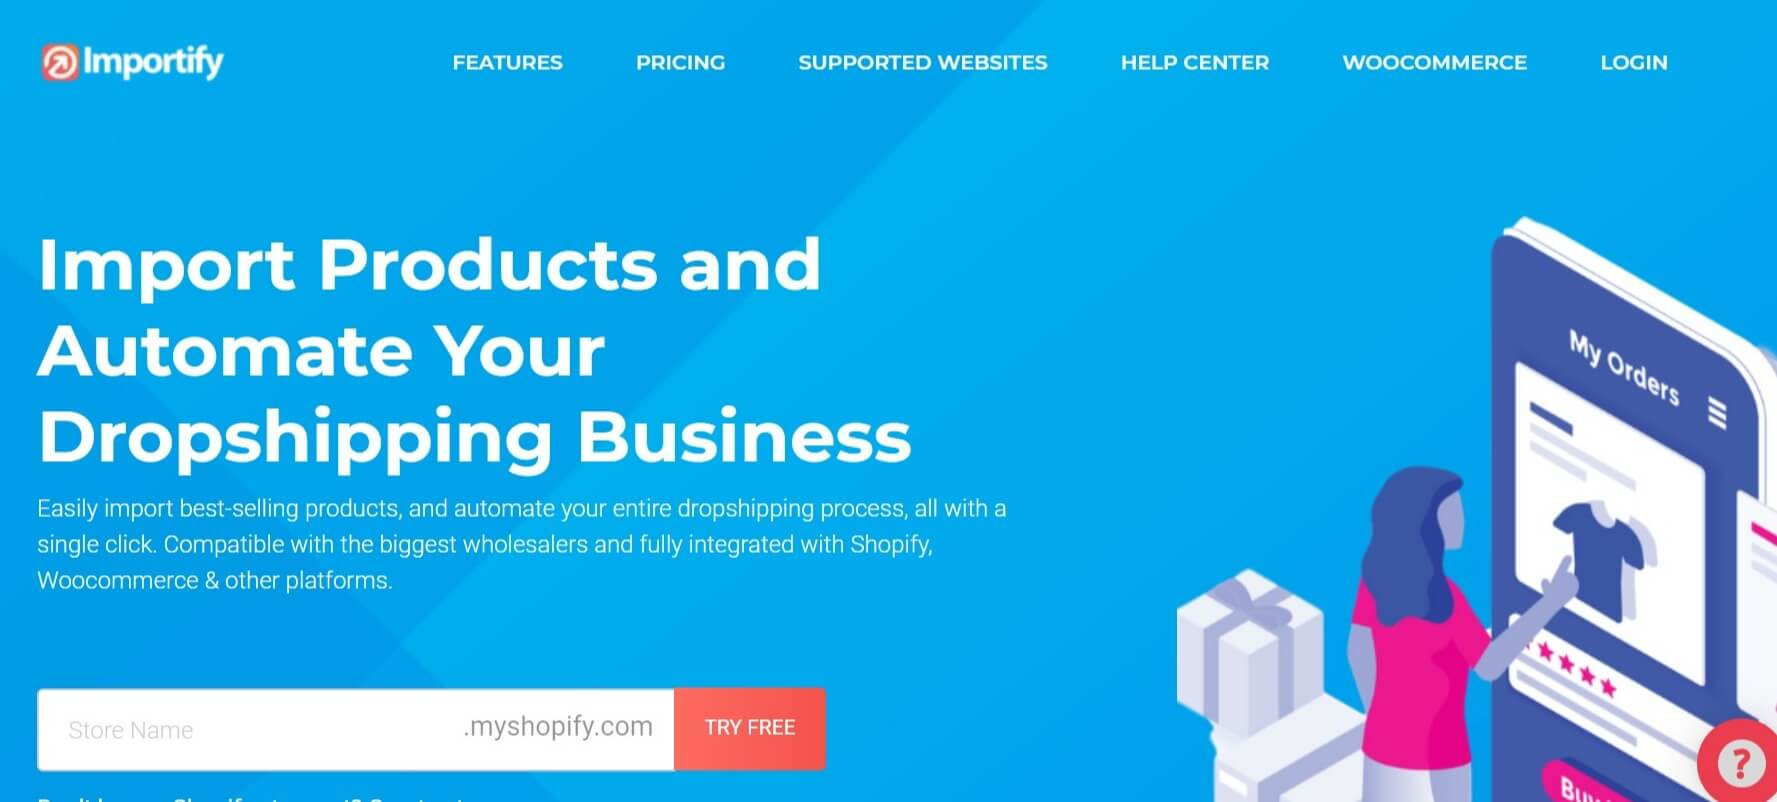 Importify dropshipping app